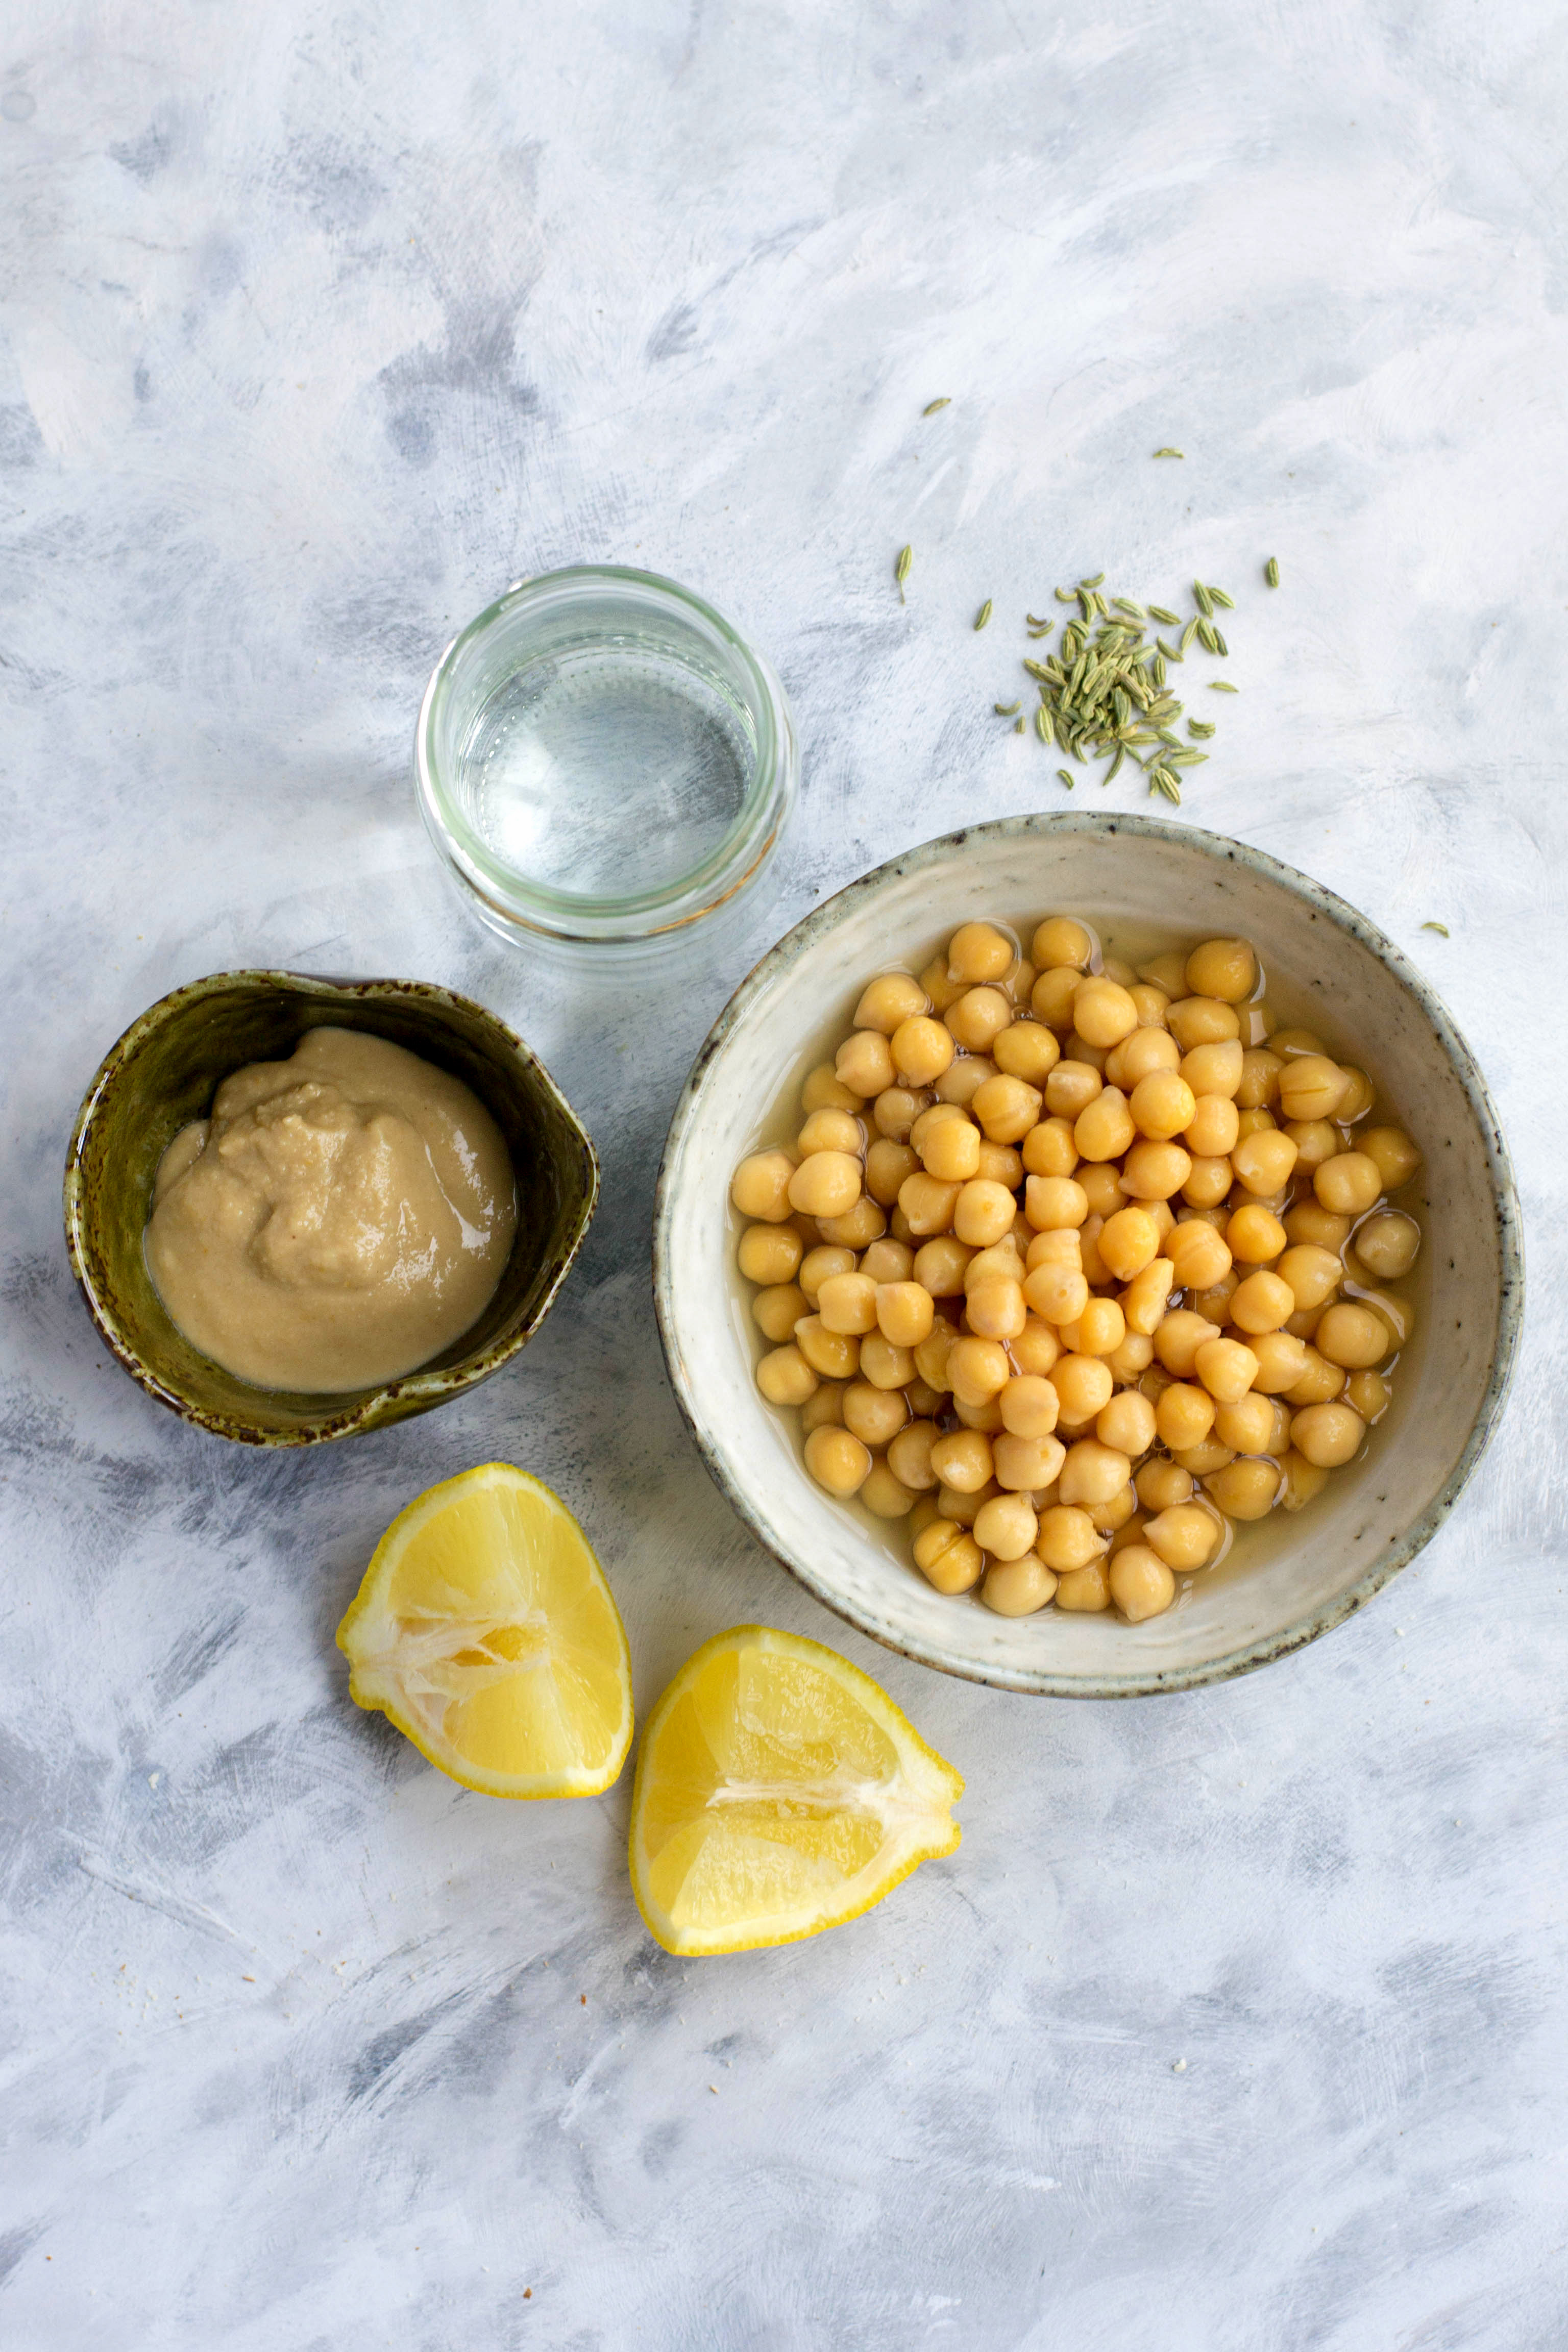 The ingredients you need to make my version of the classic hummus recipe